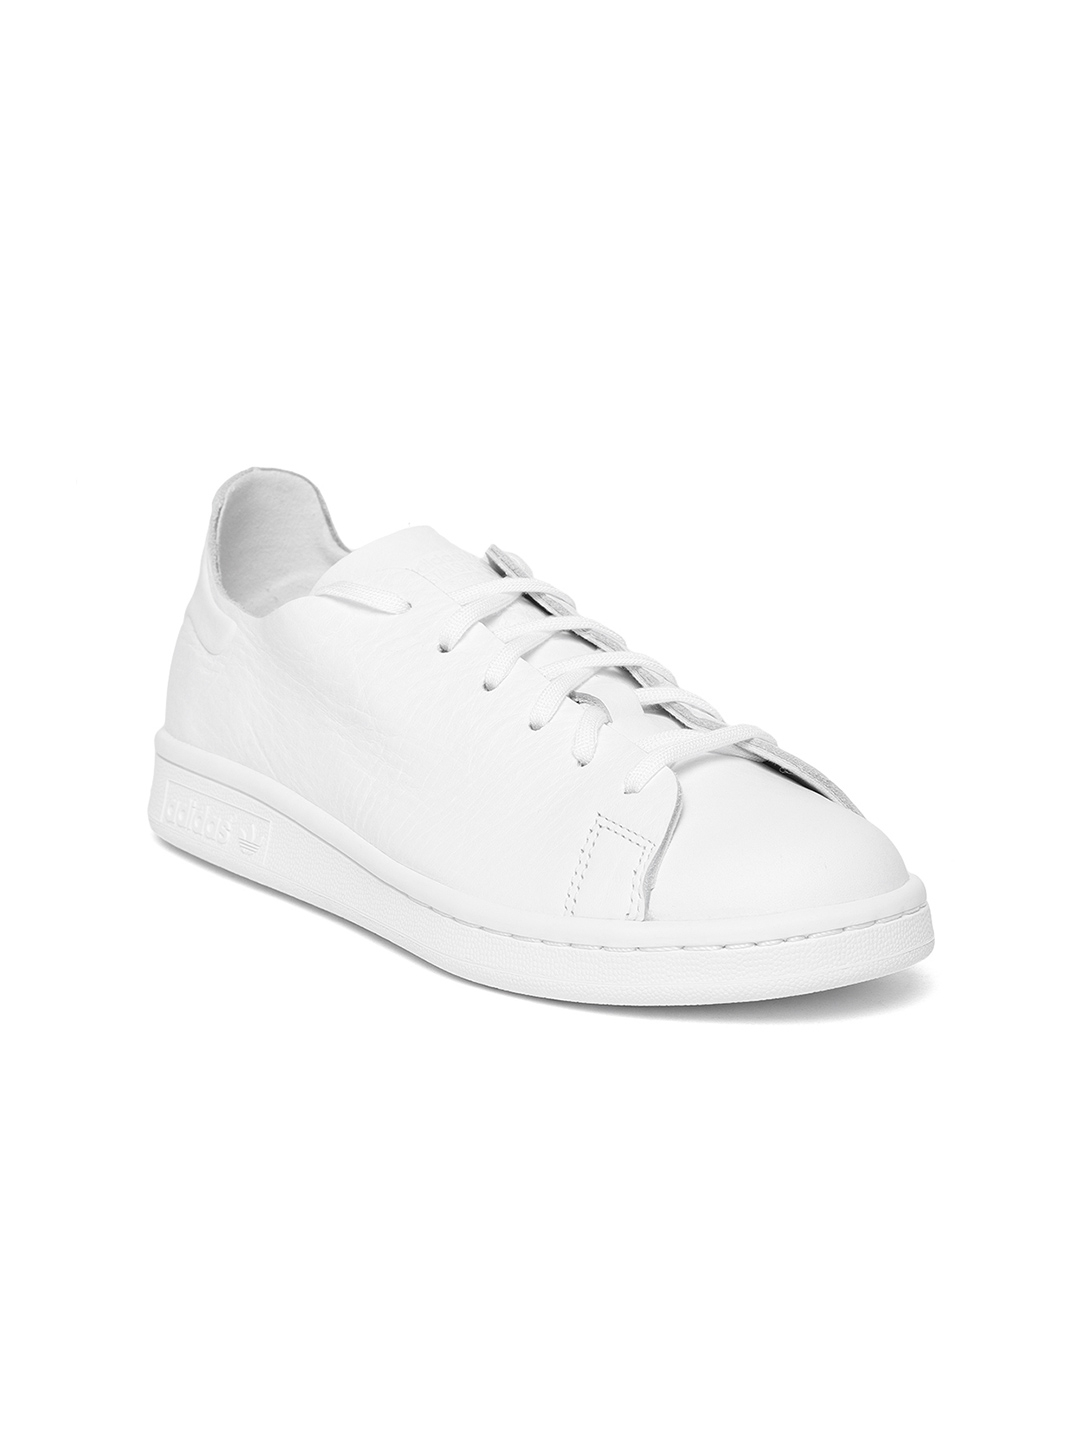 wholesale dealer 384ce b80bc ADIDAS Originals Women White Stan Smith NUUD Leather Sneakers